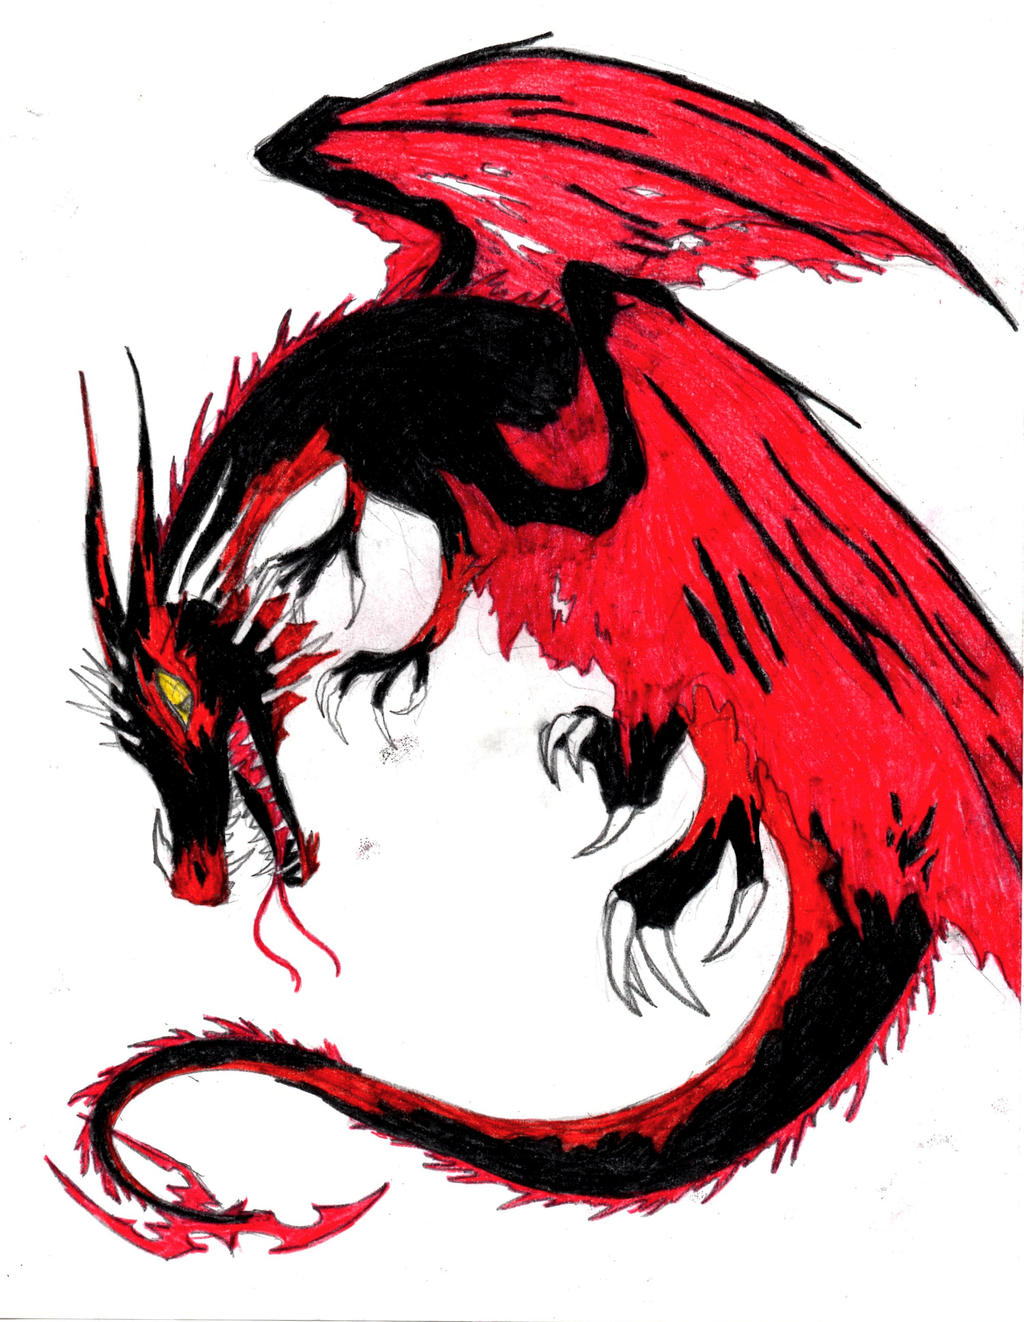 Red and Black Dragon Doodle by Dragoonzia on DeviantArt